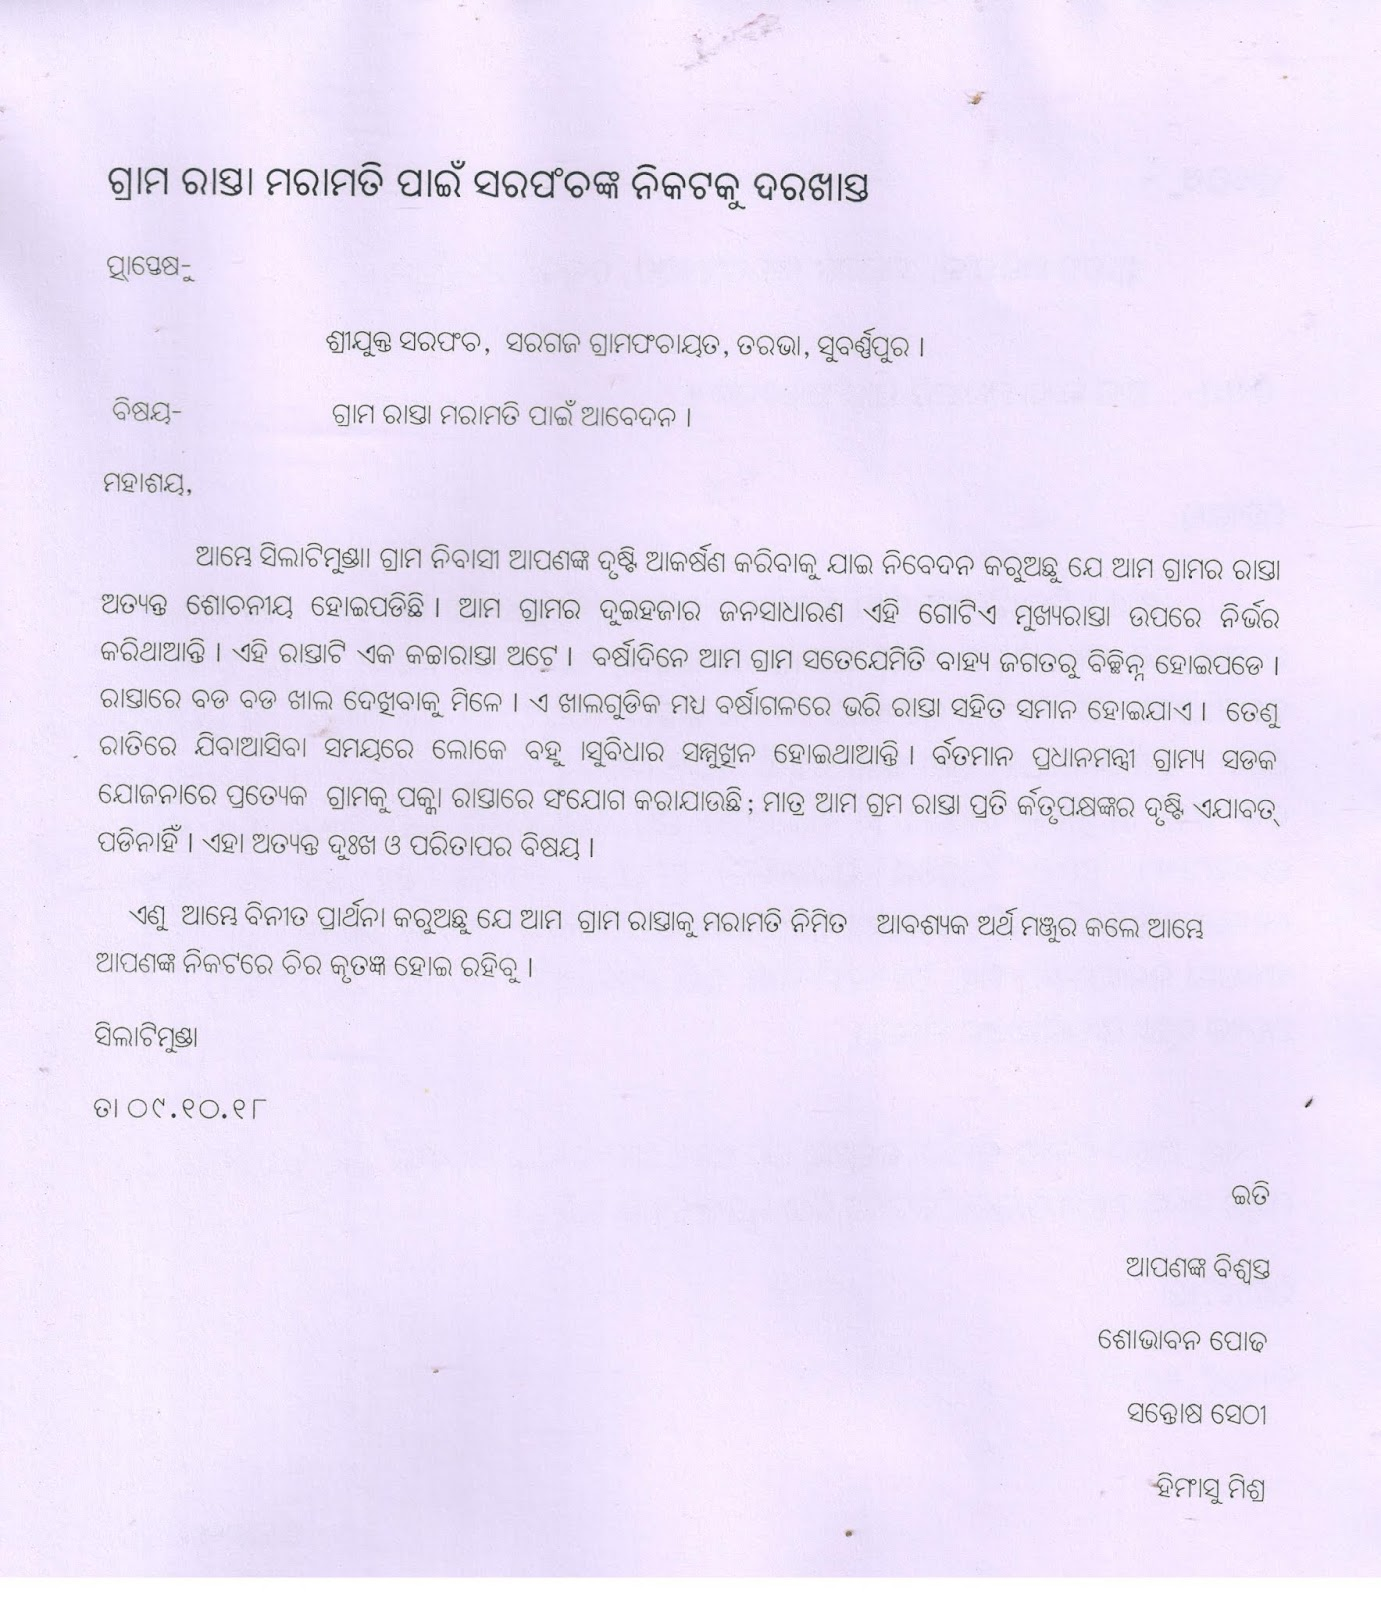 Odia application to the Sarpanch for village road repairing